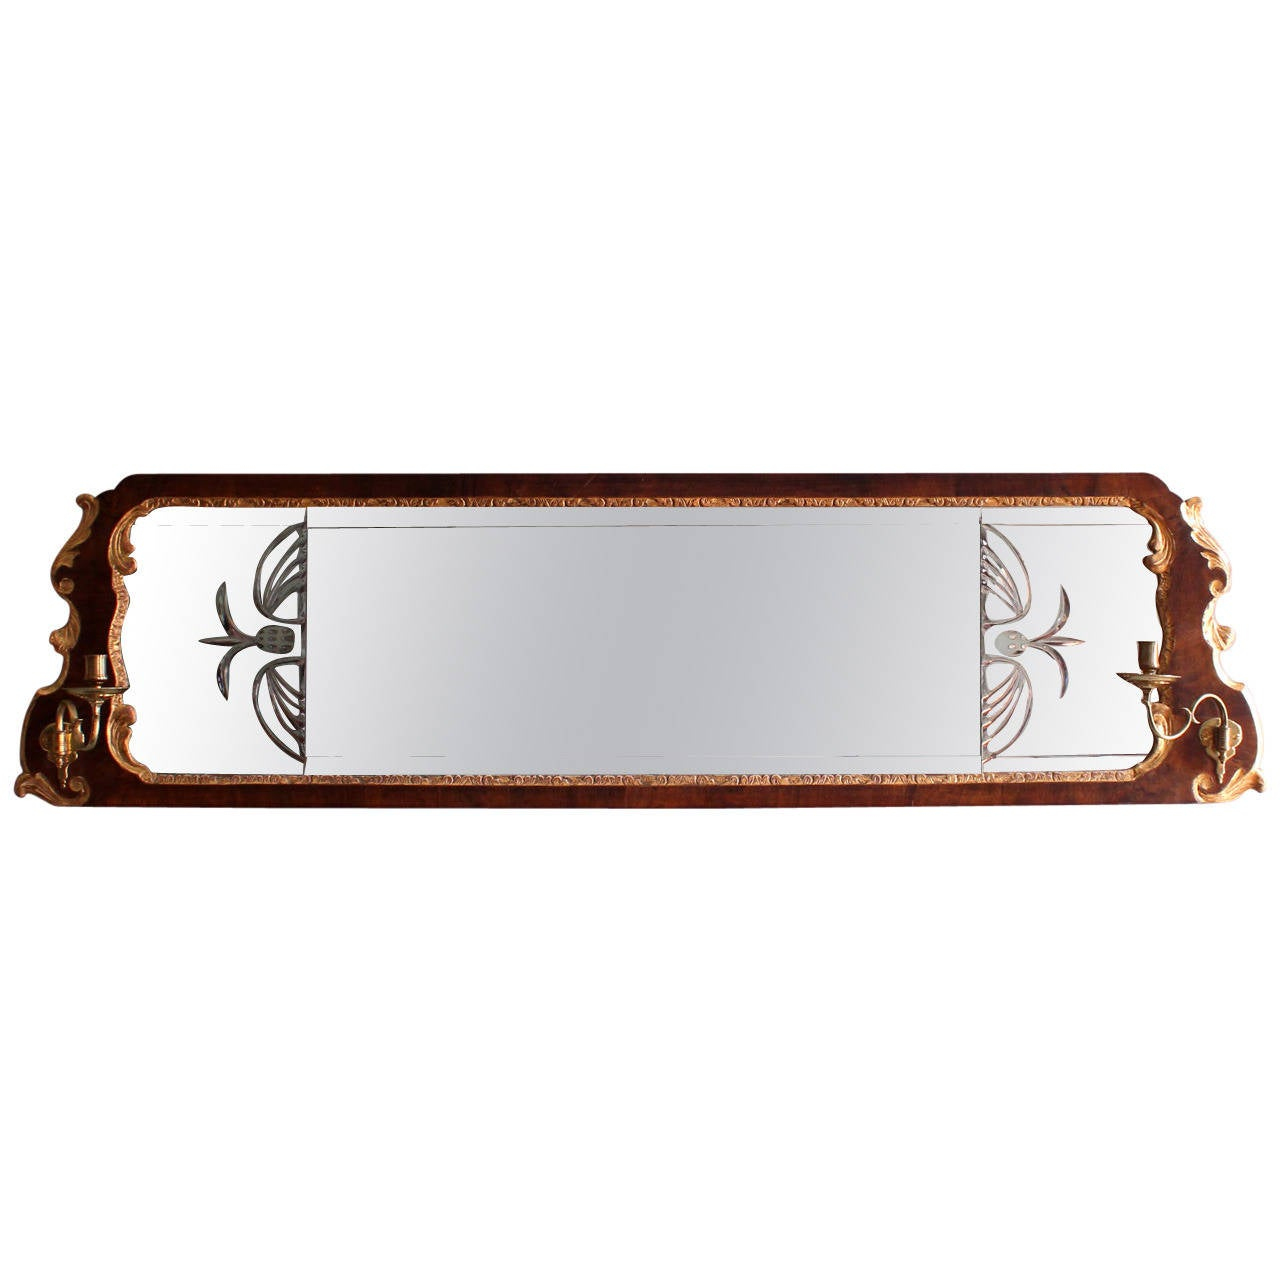 Early georgian overmantle mirror at 1stdibs for Overmantle mirror